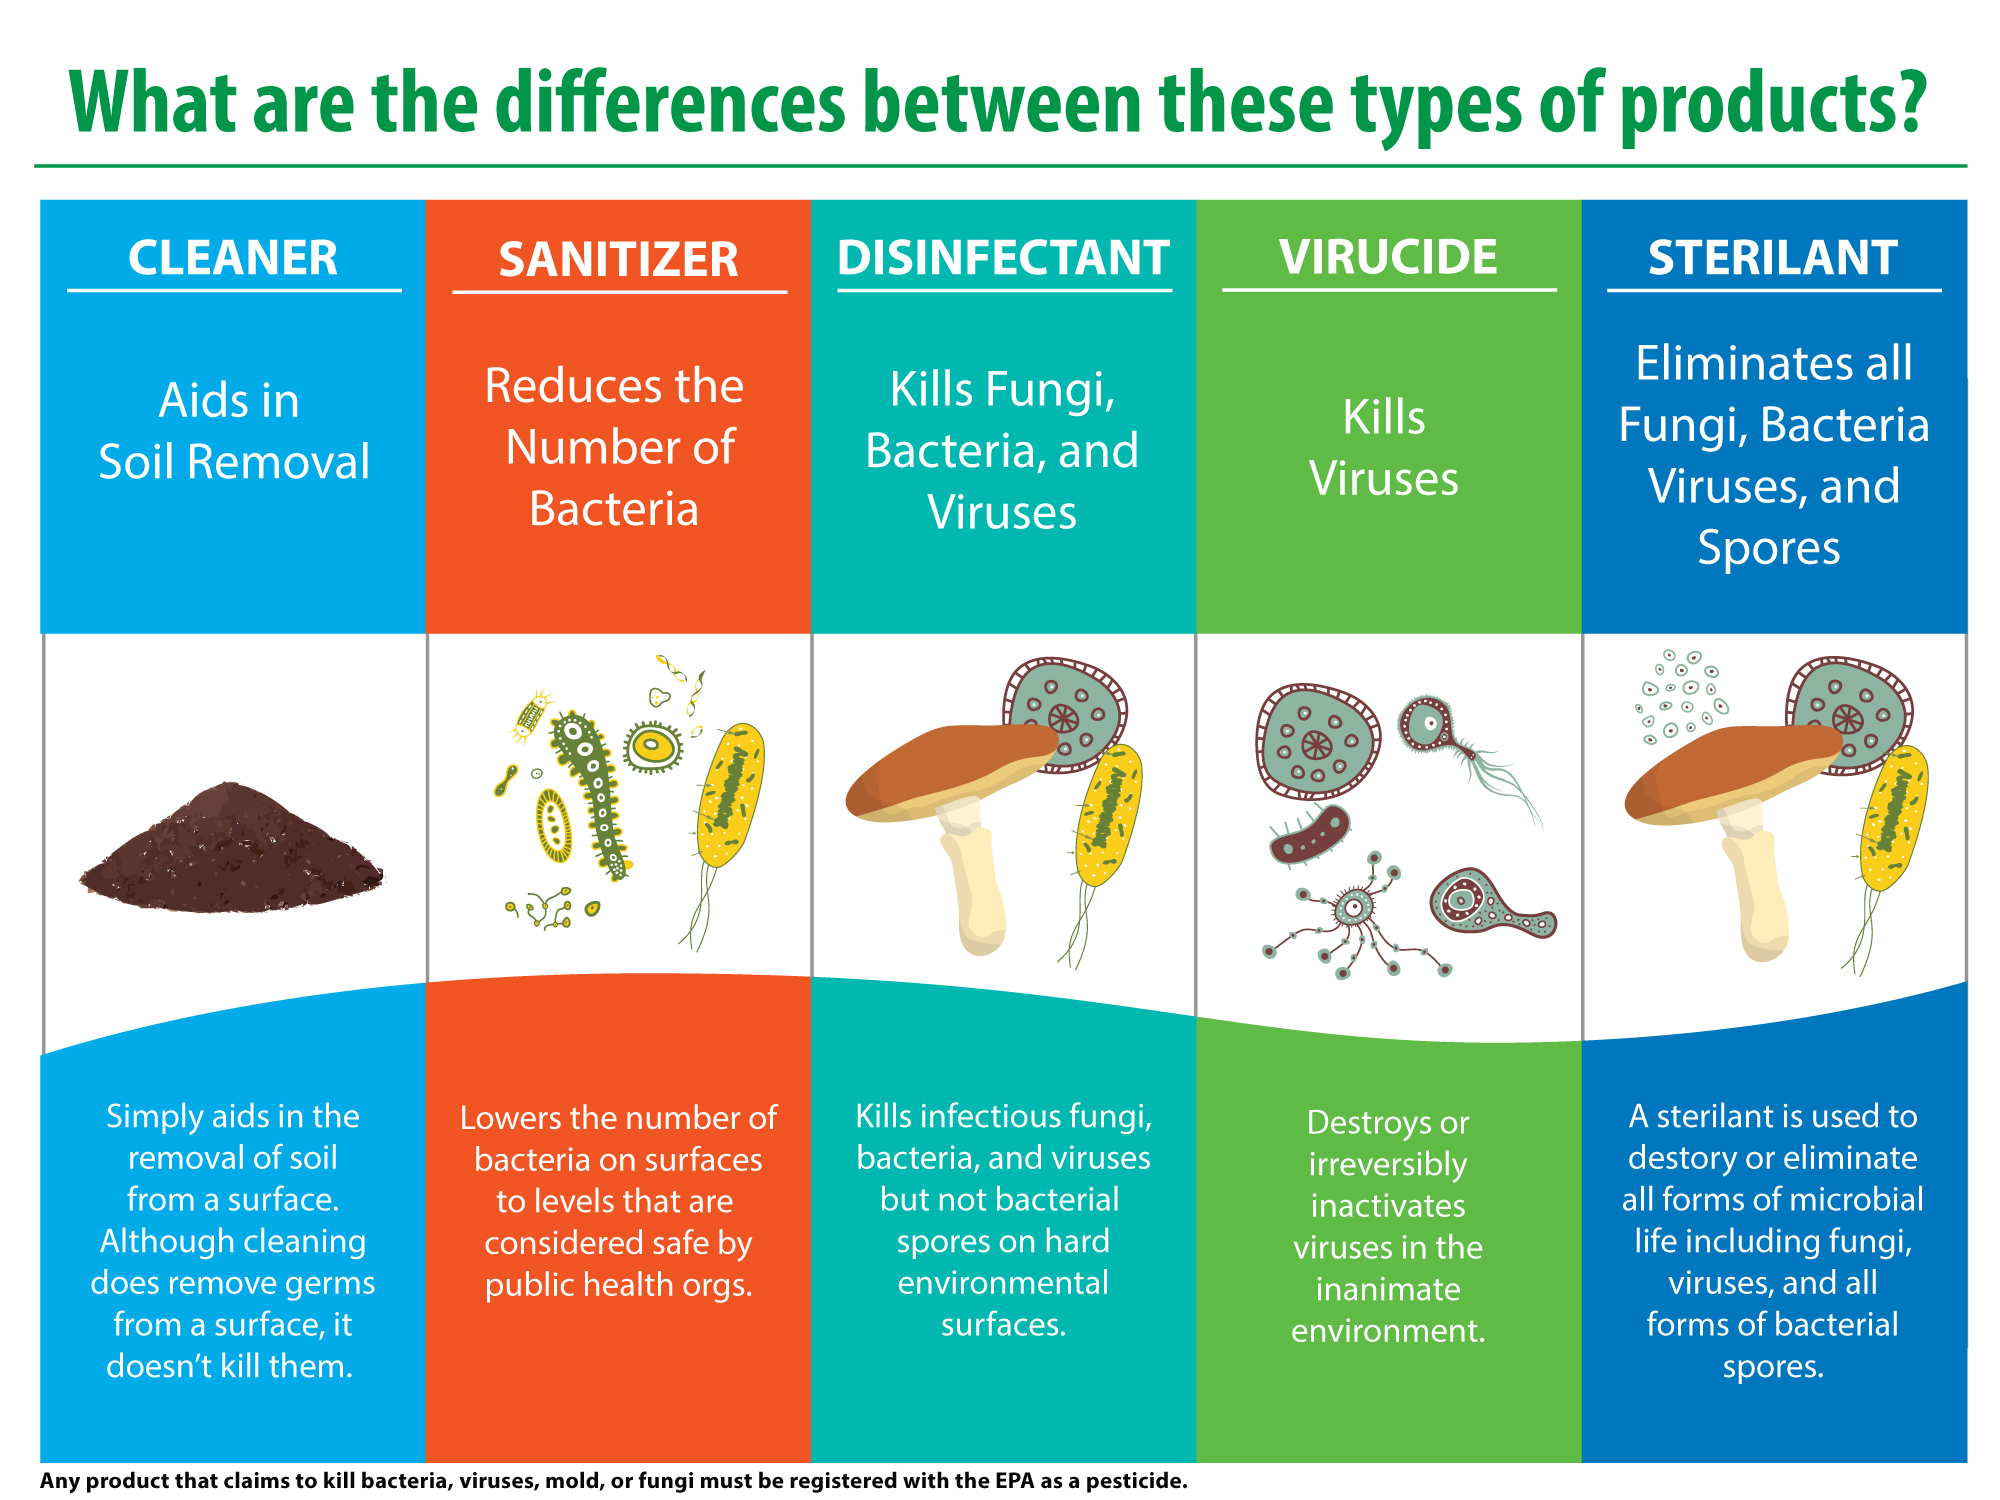 Cleaners vs Sanitizers vs Disinfectants vs Virucide  vs Sterilant